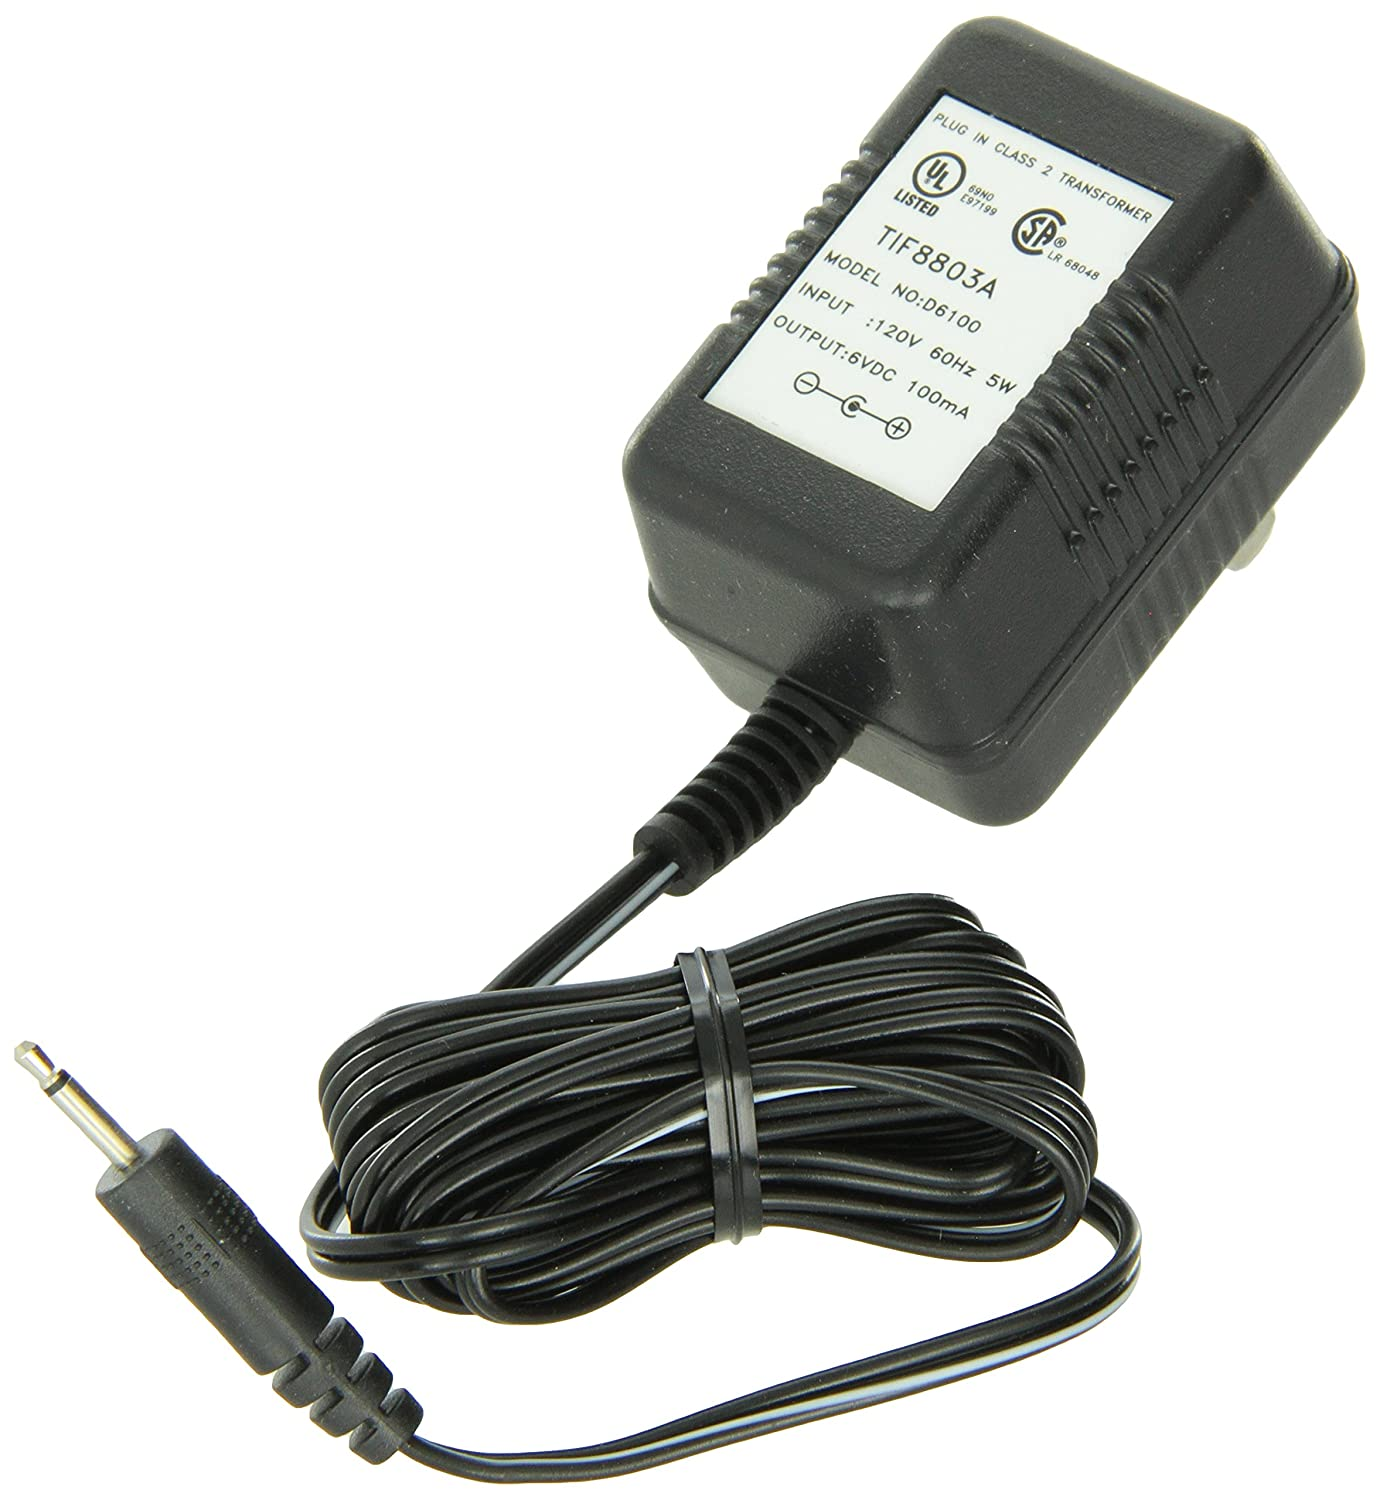 Robinair TIF8803A 115V Battery Charger